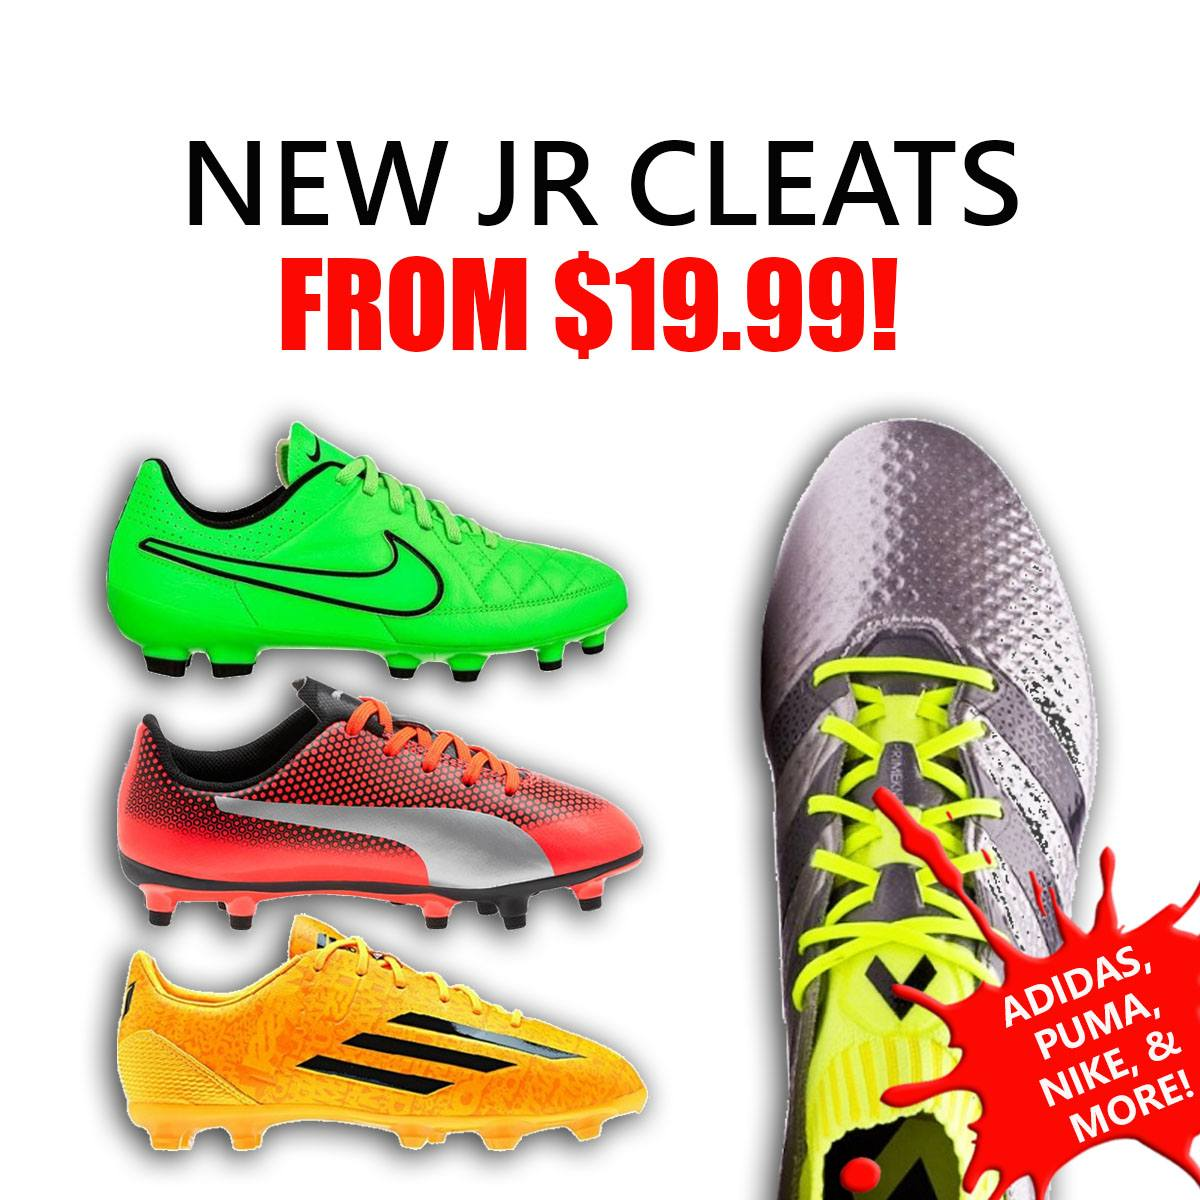 Soccer Equipment Clearance in Vancouver